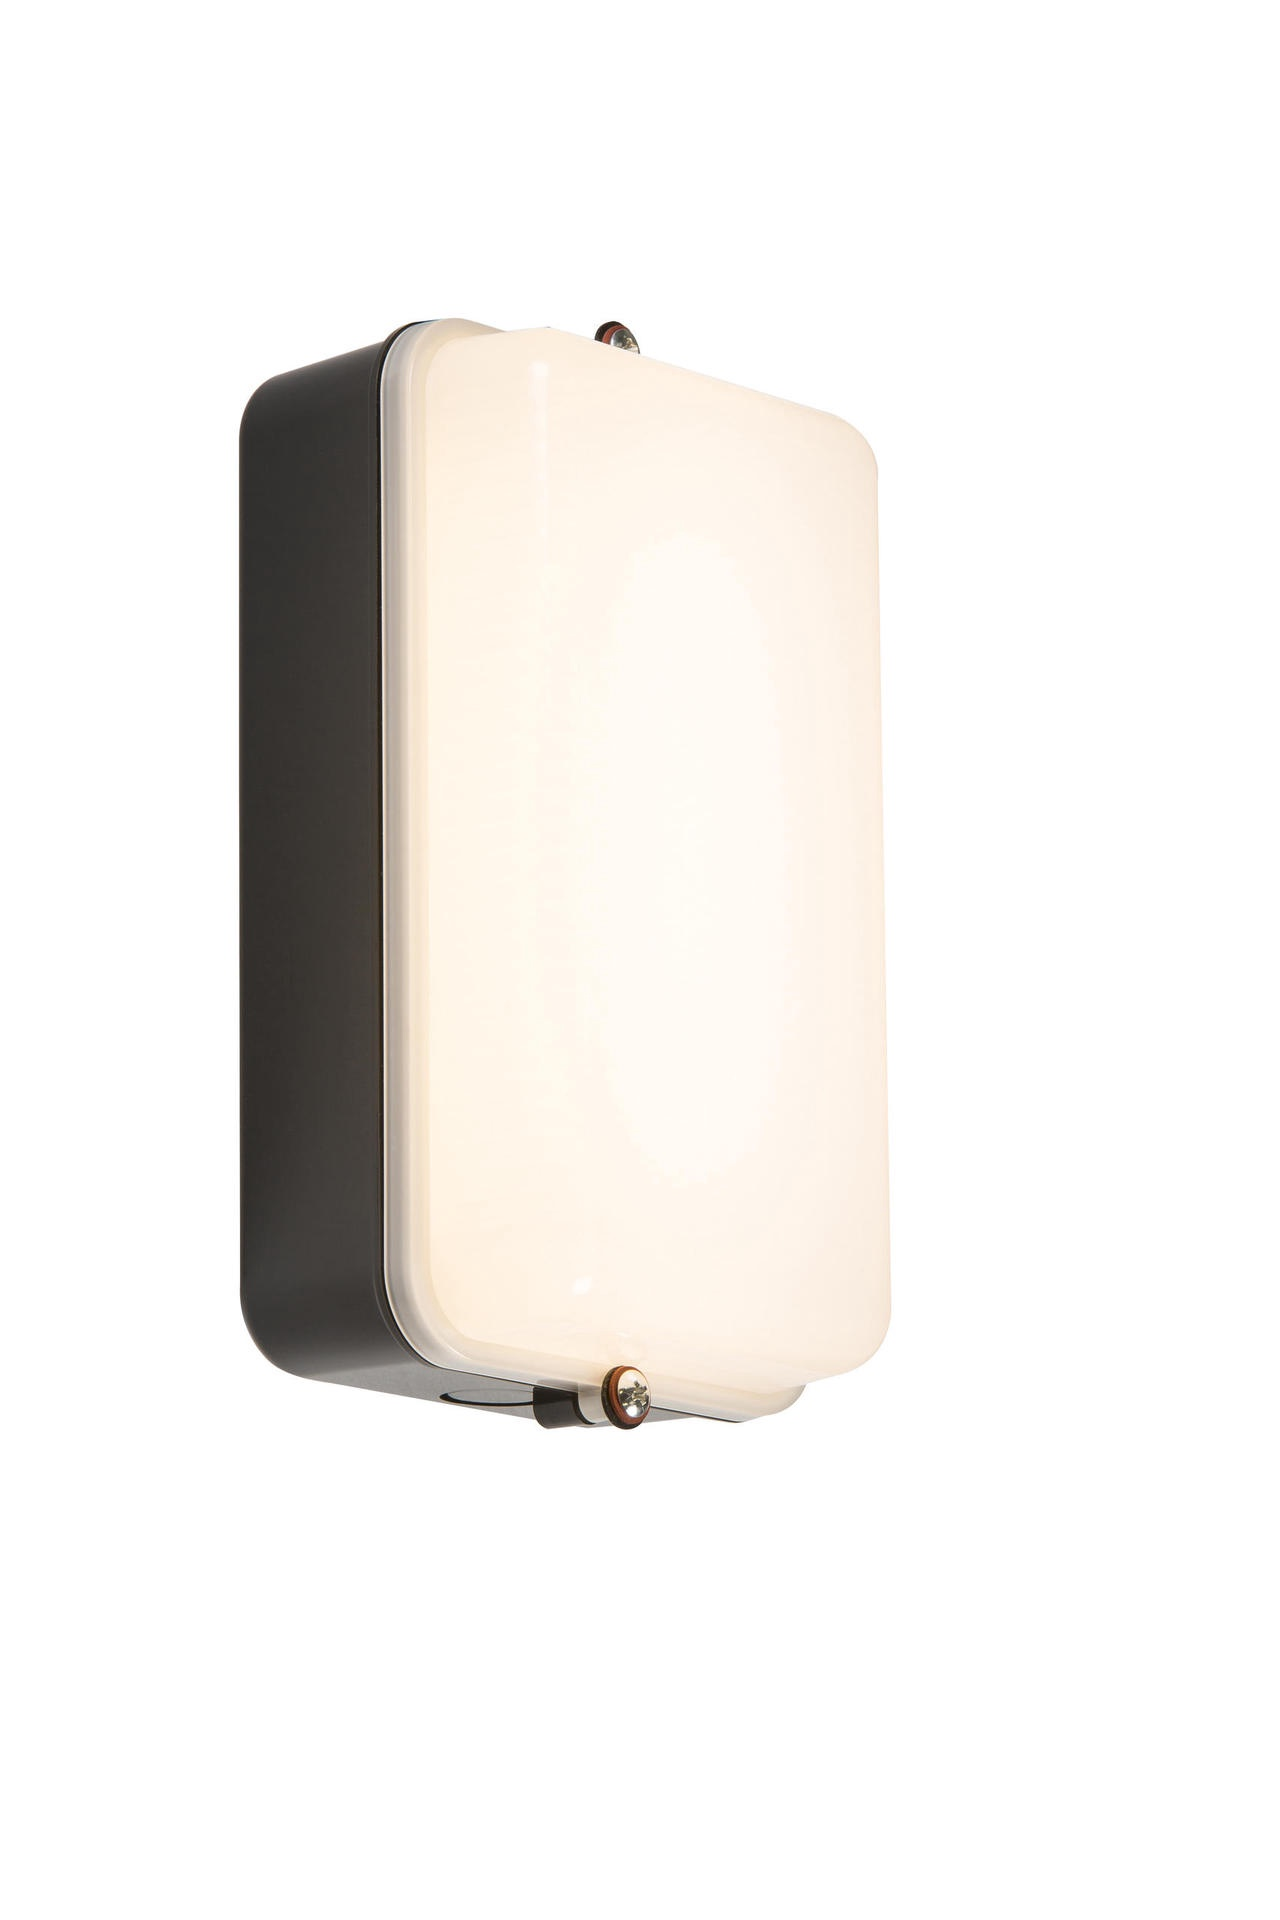 230V IP54 5W LED Security Amenity Bulkhead Black Base with Opal Diffuser Cool White 4000K